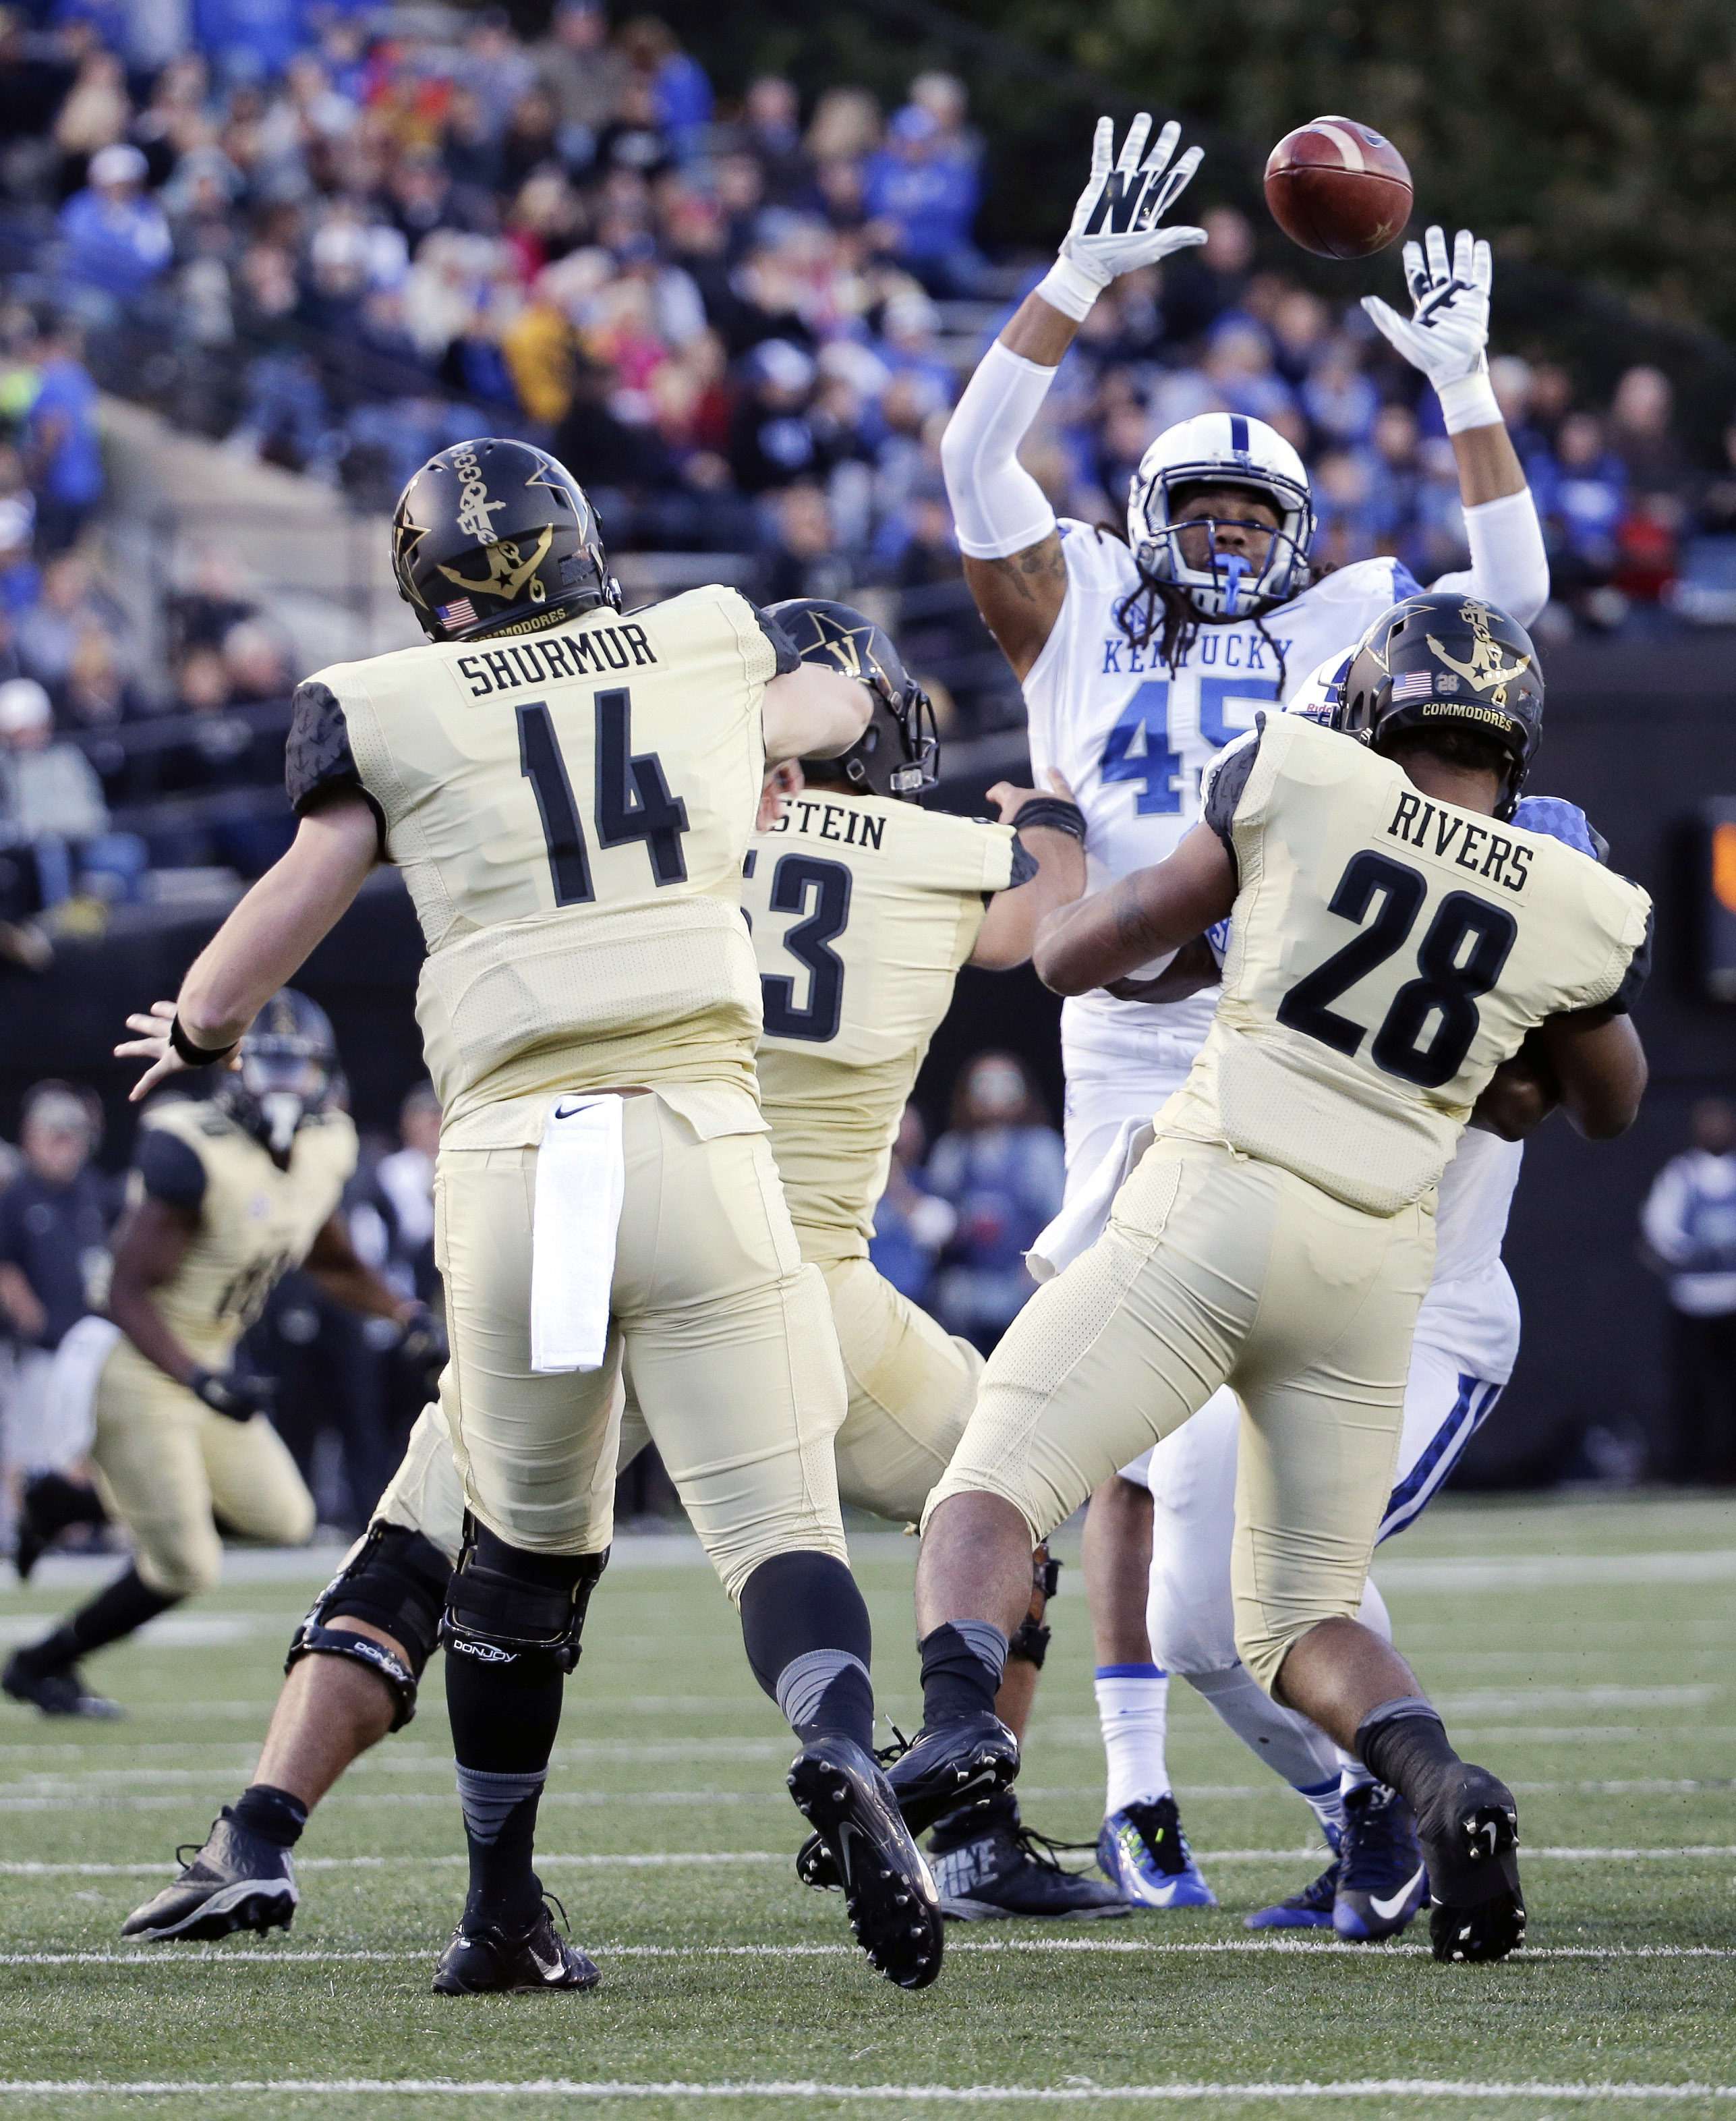 Vanderbilt quarterback Kyle Shurmur (14) passes over the reach of Kentucky linebacker Josh Forrest (45) in the first half of an NCAA college football game Saturday, Nov. 14, 2015, in Nashville, Tenn. (AP Photo/Mark Humphrey)